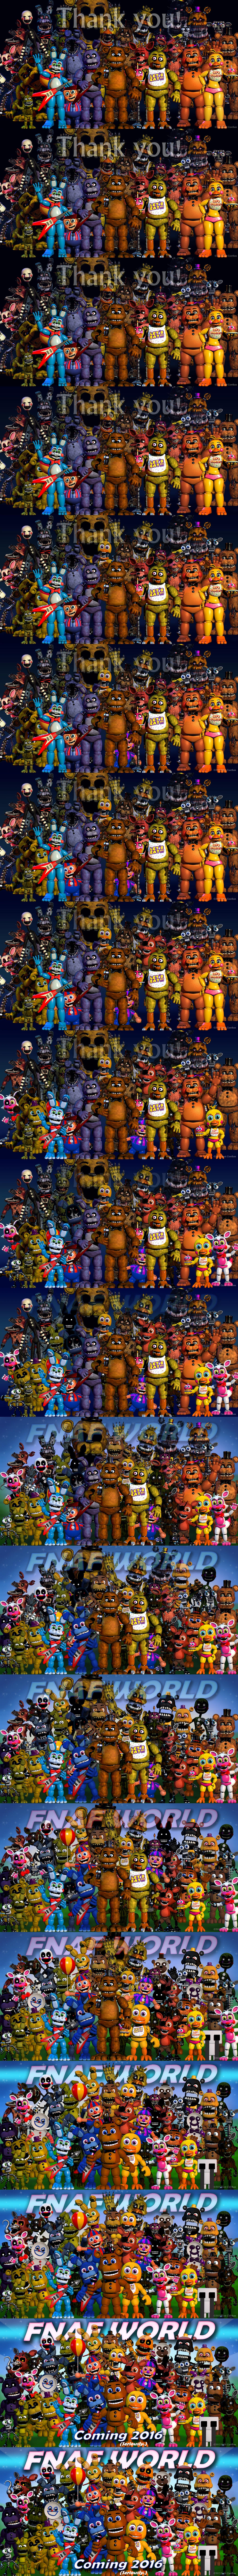 From 'Thank You' to 'FNAF World' - all 20 teasers by Solace-Stills